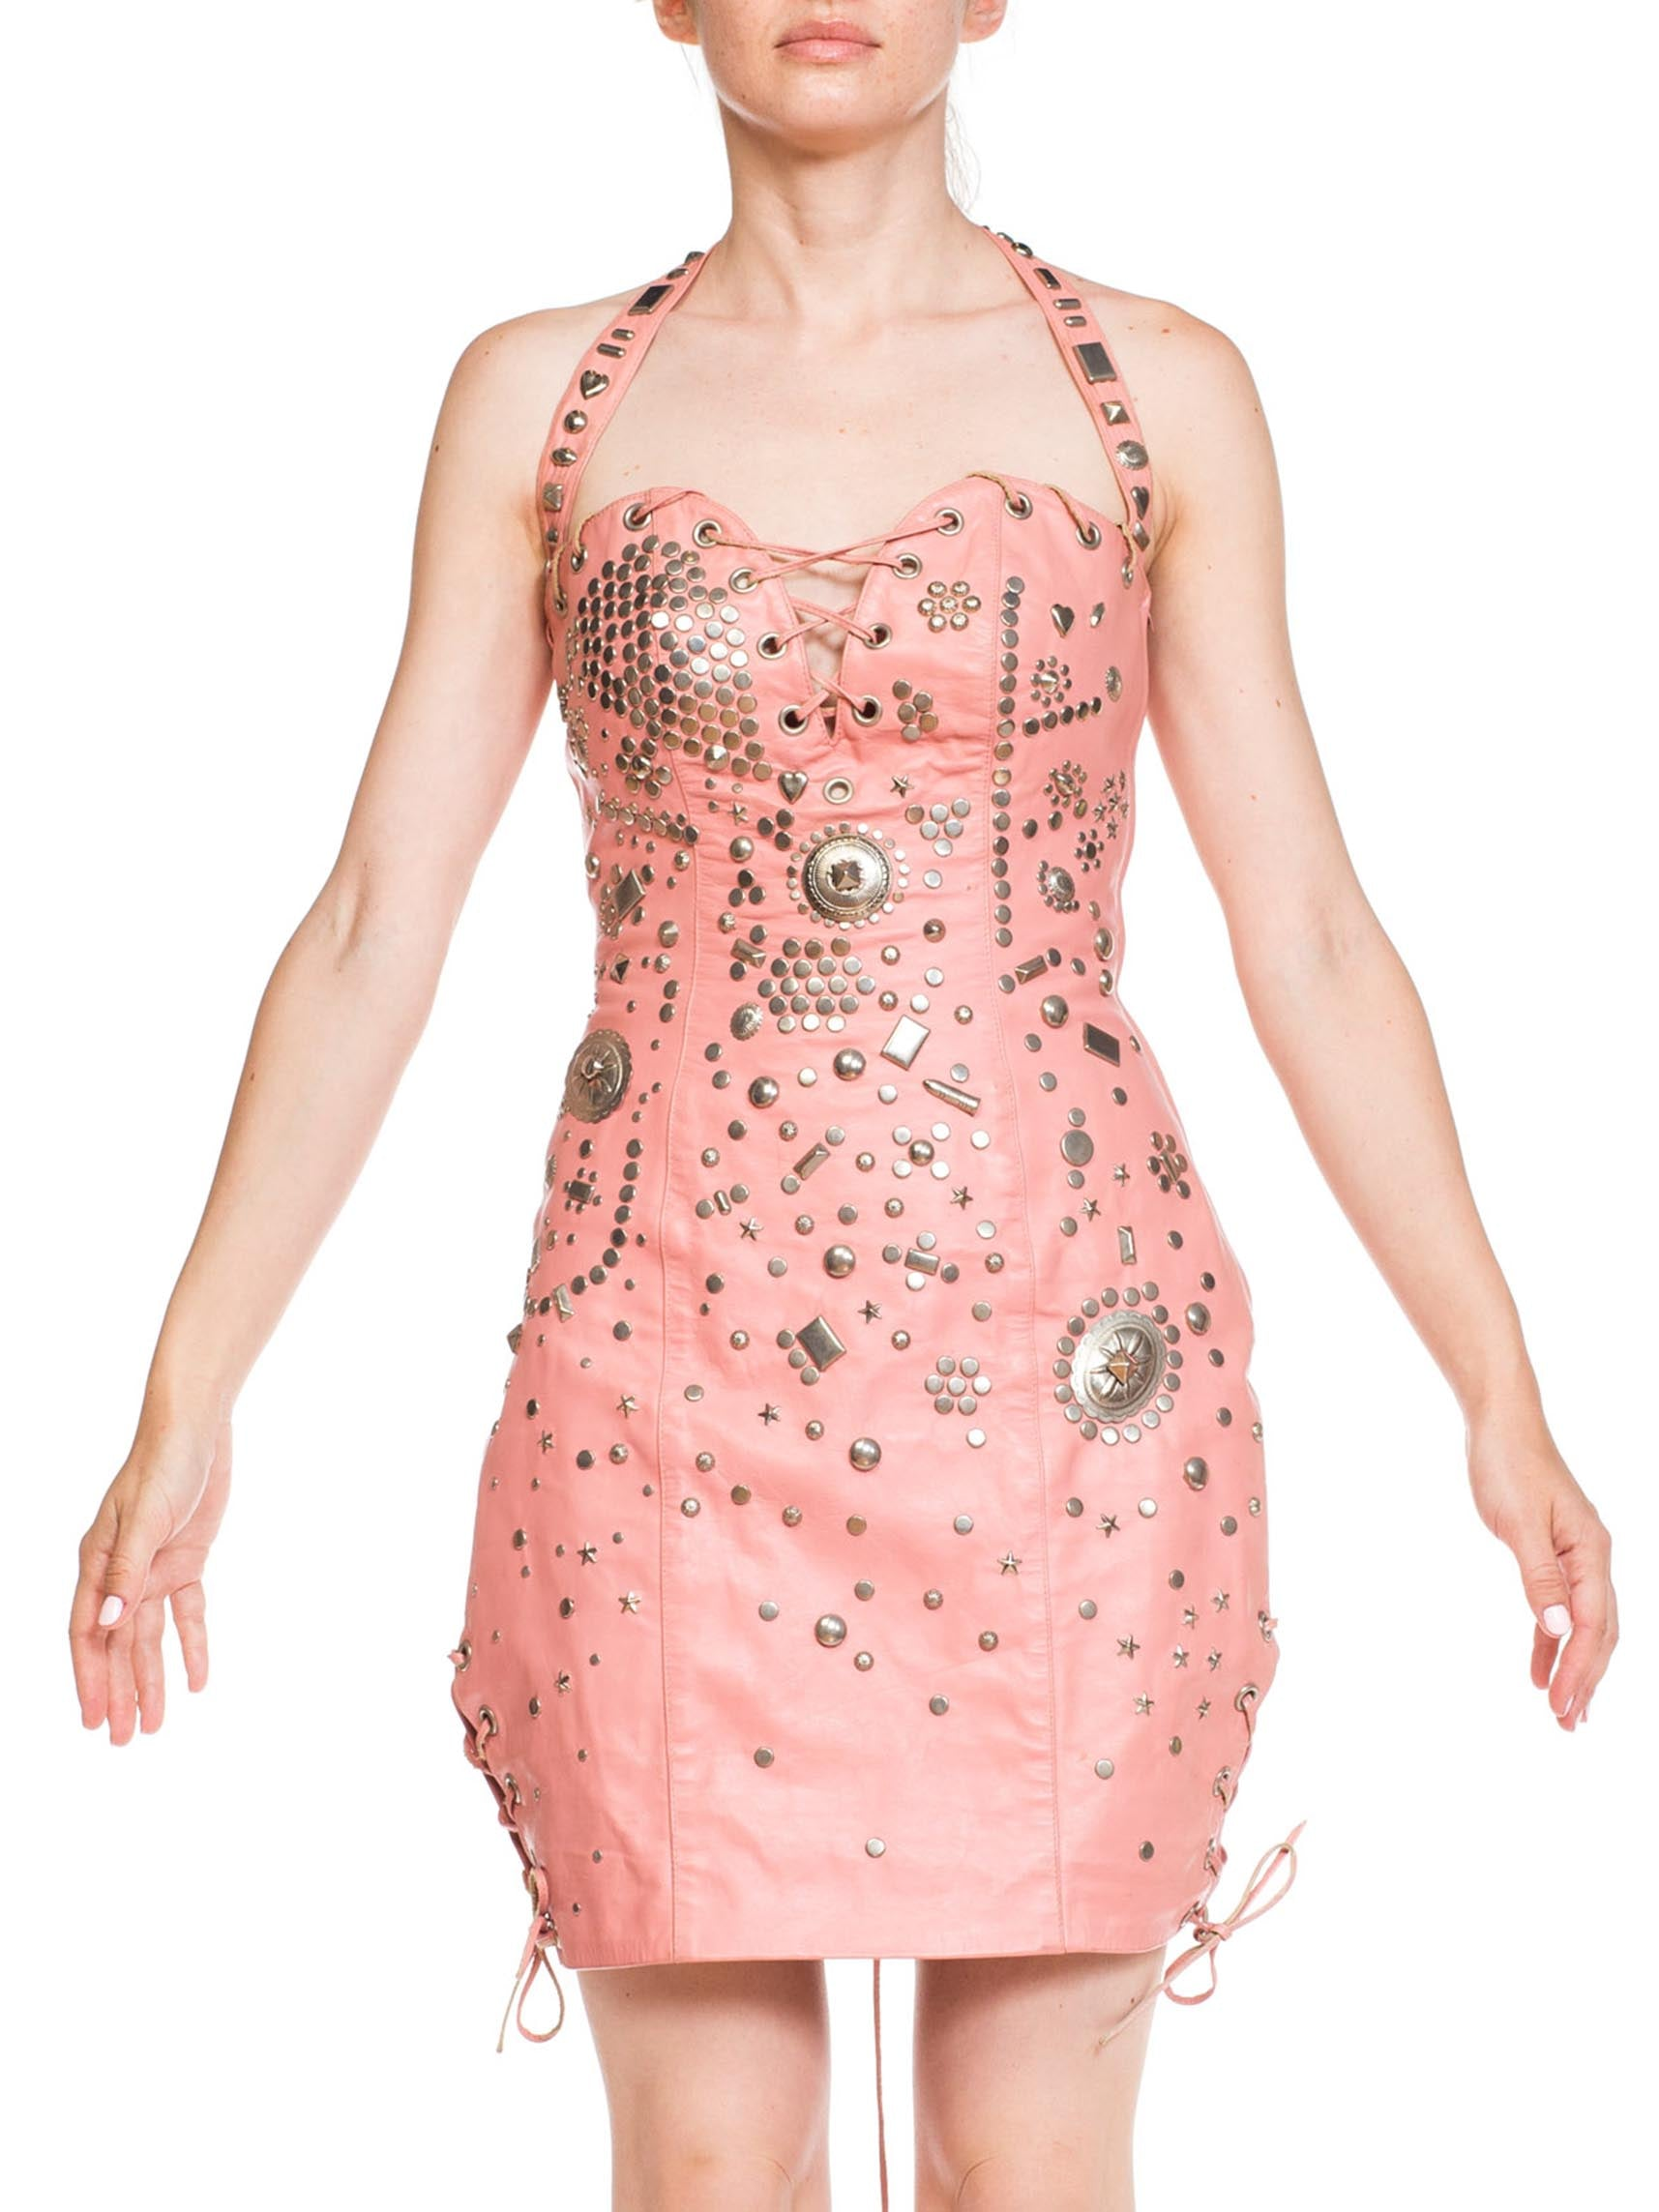 Studded Pink Leather Rocker Chick Dress